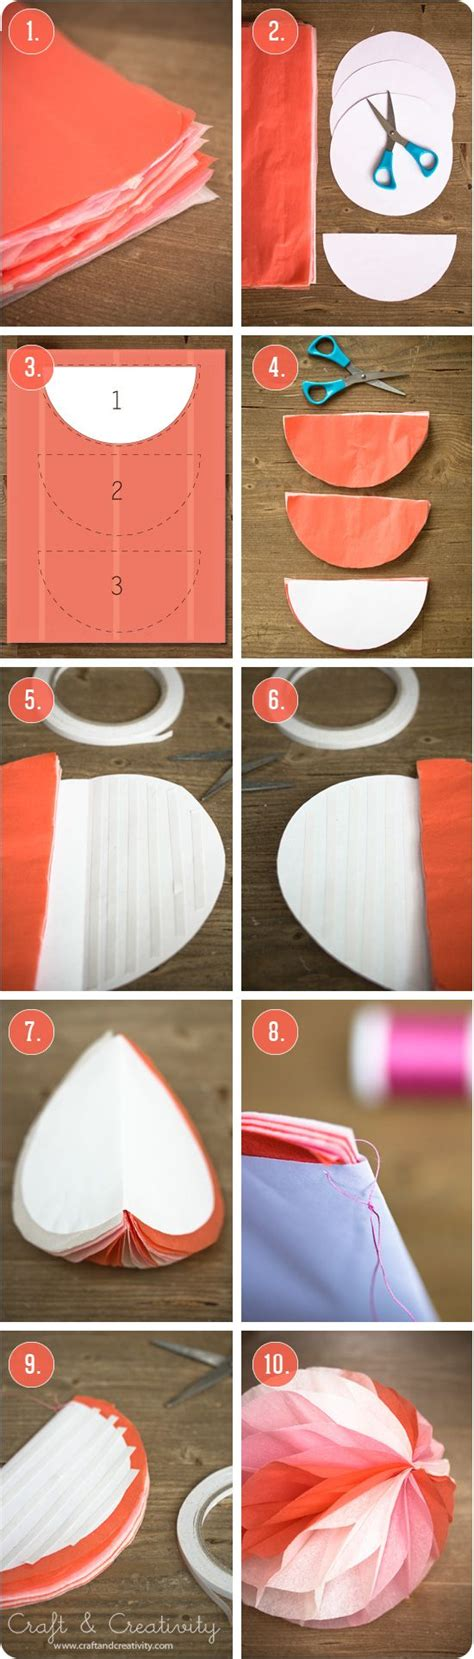 Make Your Own Paper Decorations - creativity diy and crafts and honeycomb paper on